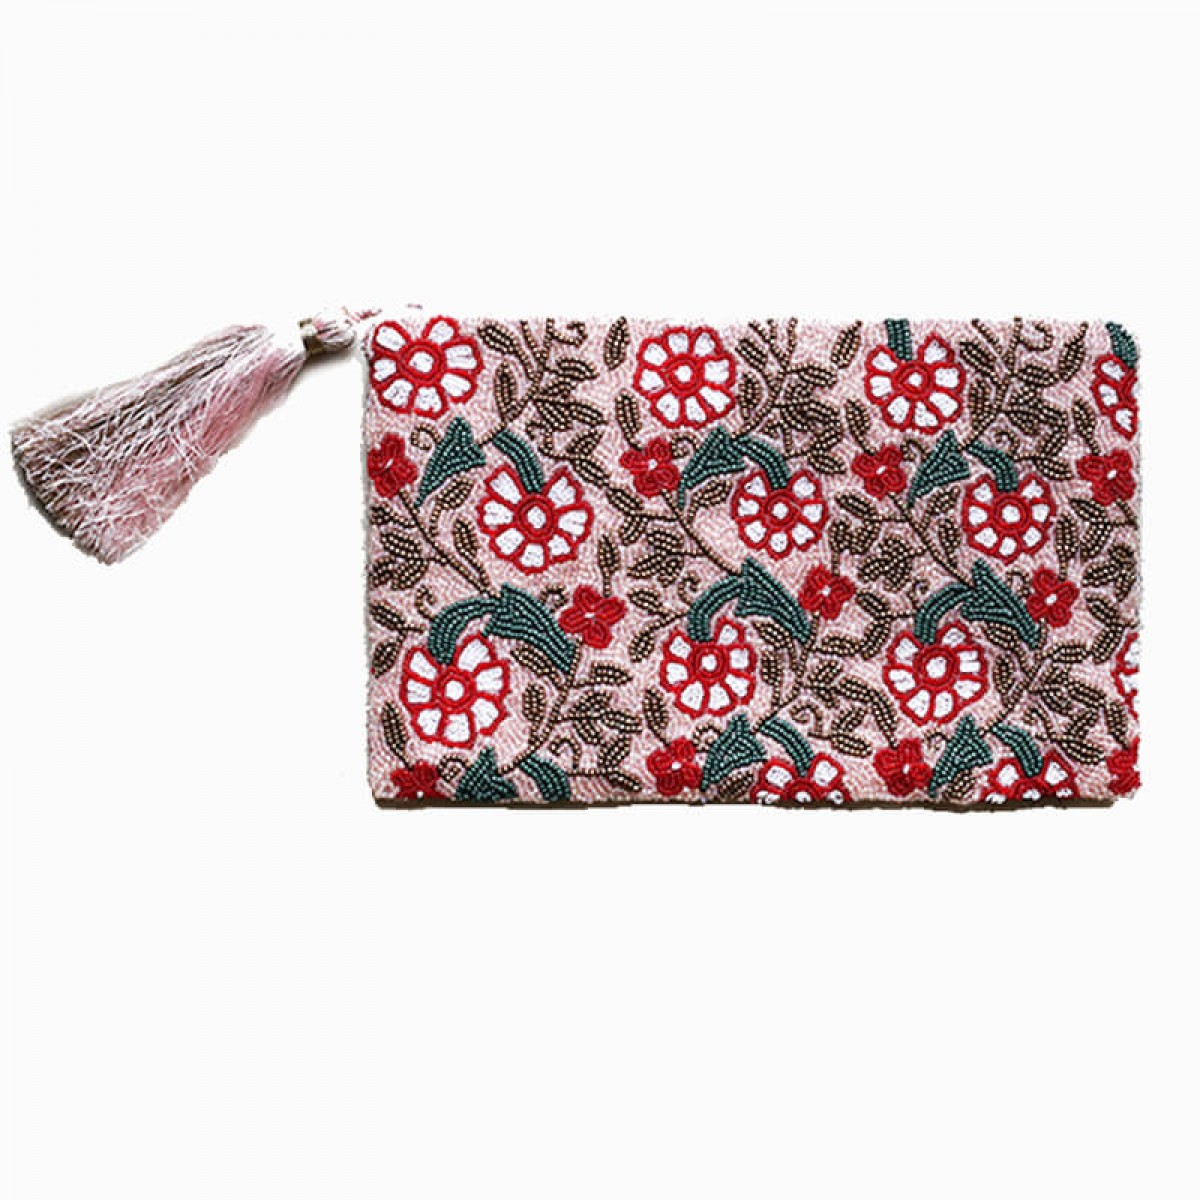 Beaded and Sequin Flower Clutch Bag